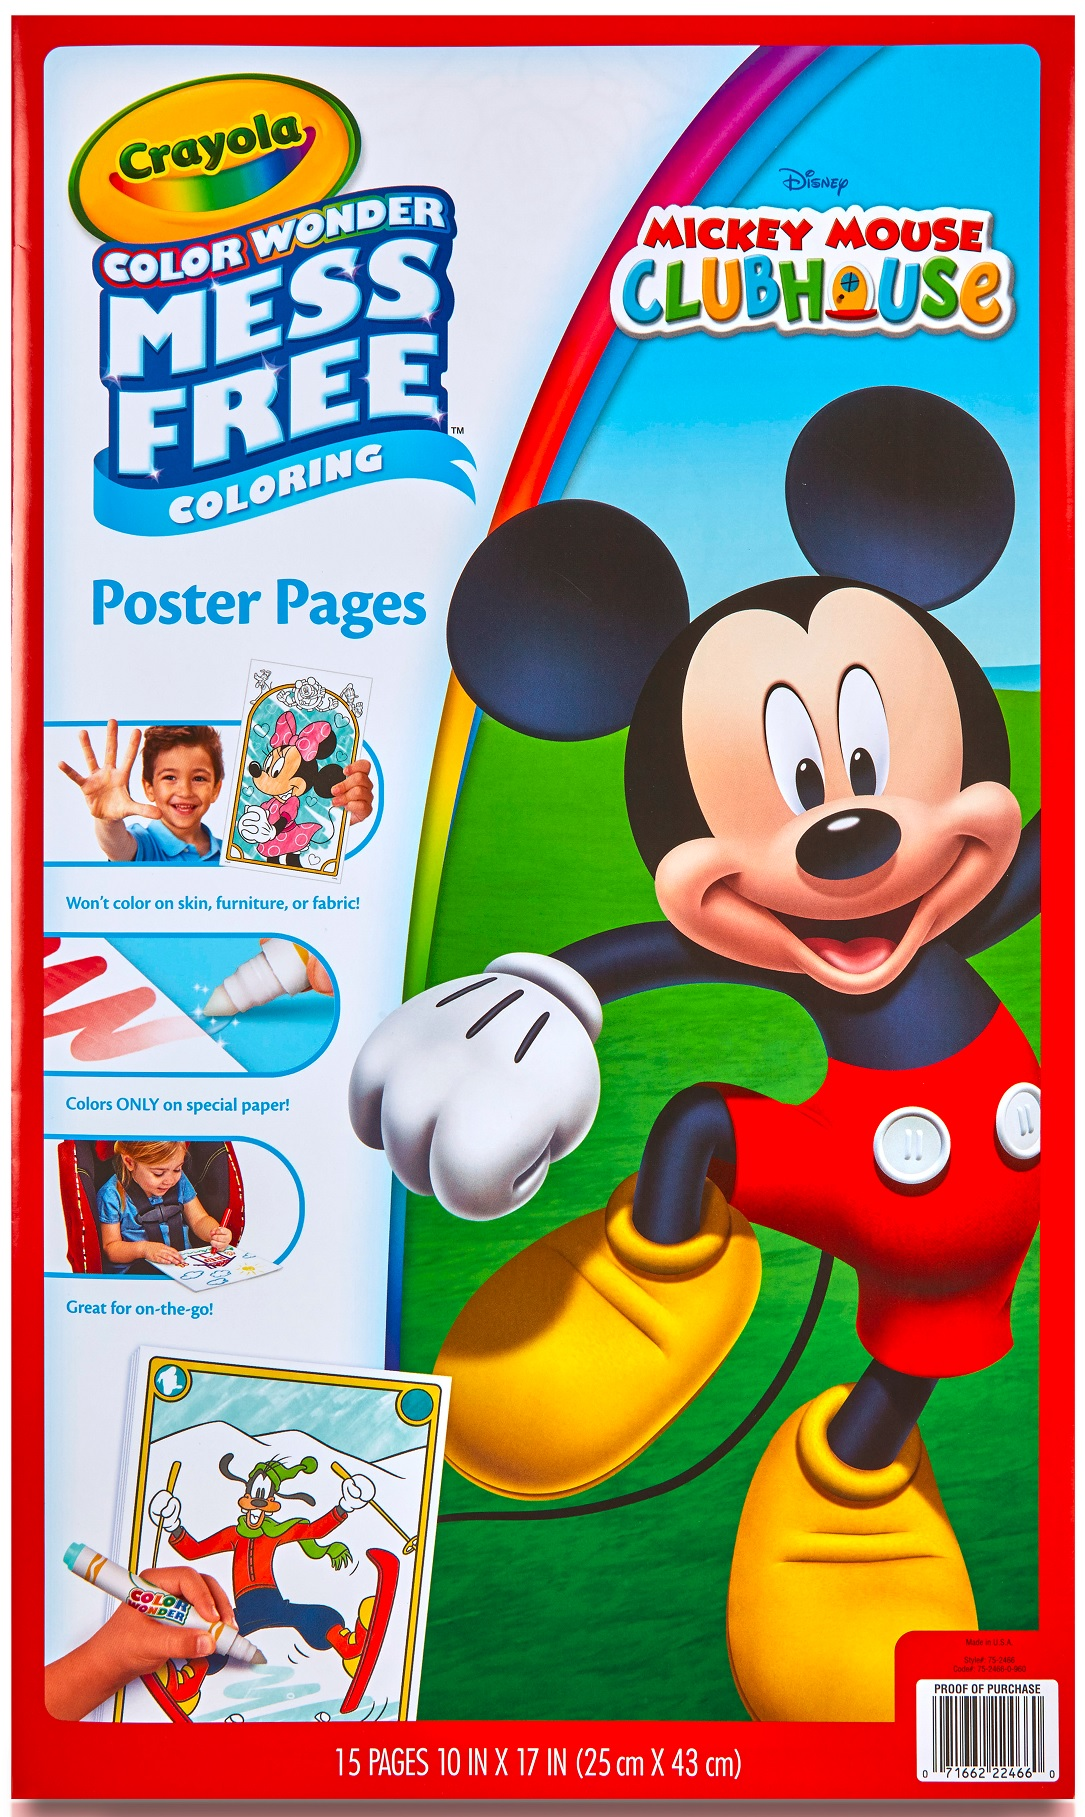 Crayola Color Wonder, Disney Mickey Mouse Clubhouse, 15 Poster Pages by Crayola